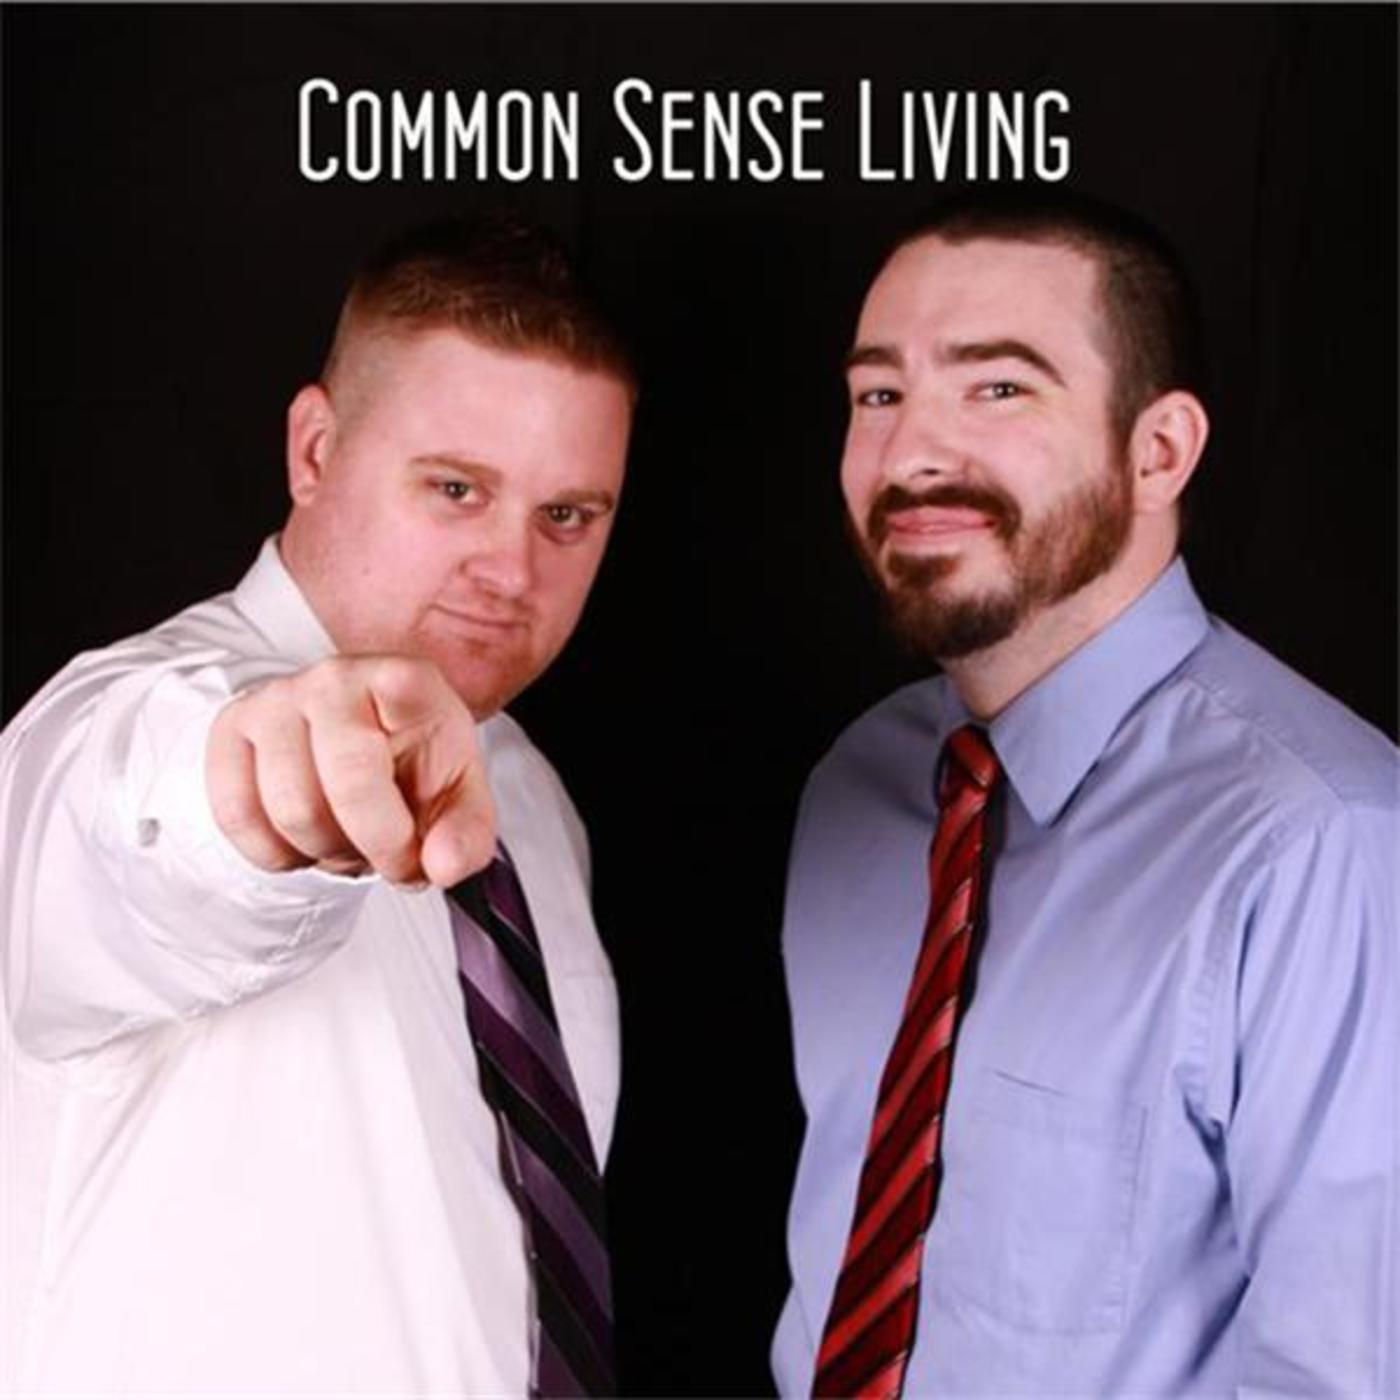 Common Sense Living